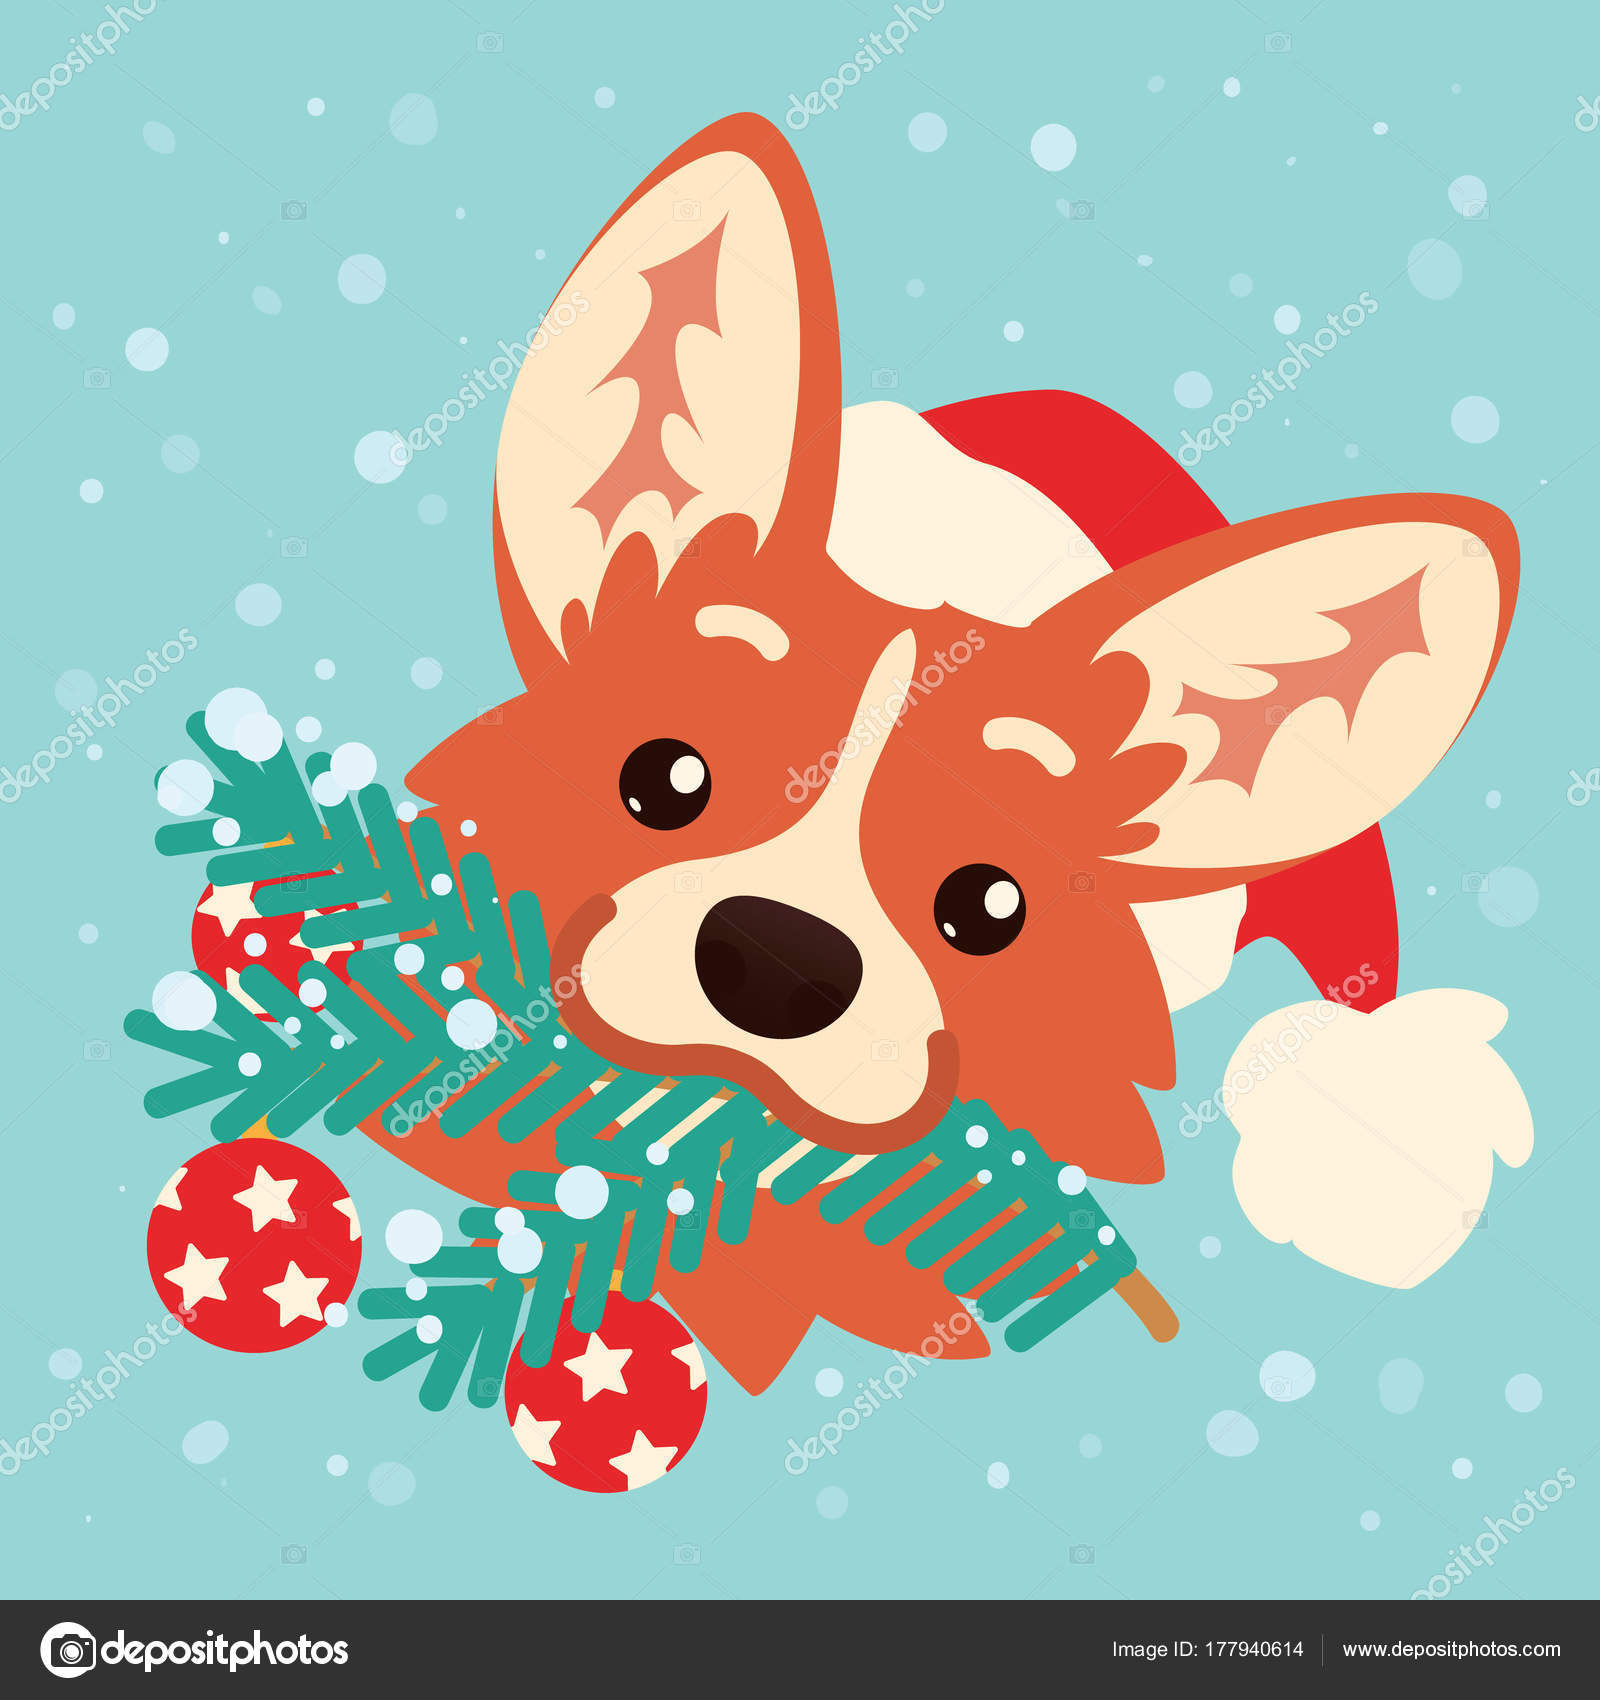 Cute corgi dog in santa hat with christmas tree branch in mouth colorful illustration of welsh corgi head in flat cartoon style on blue background with snow christmas card happy new year kristyandbryce Image collections